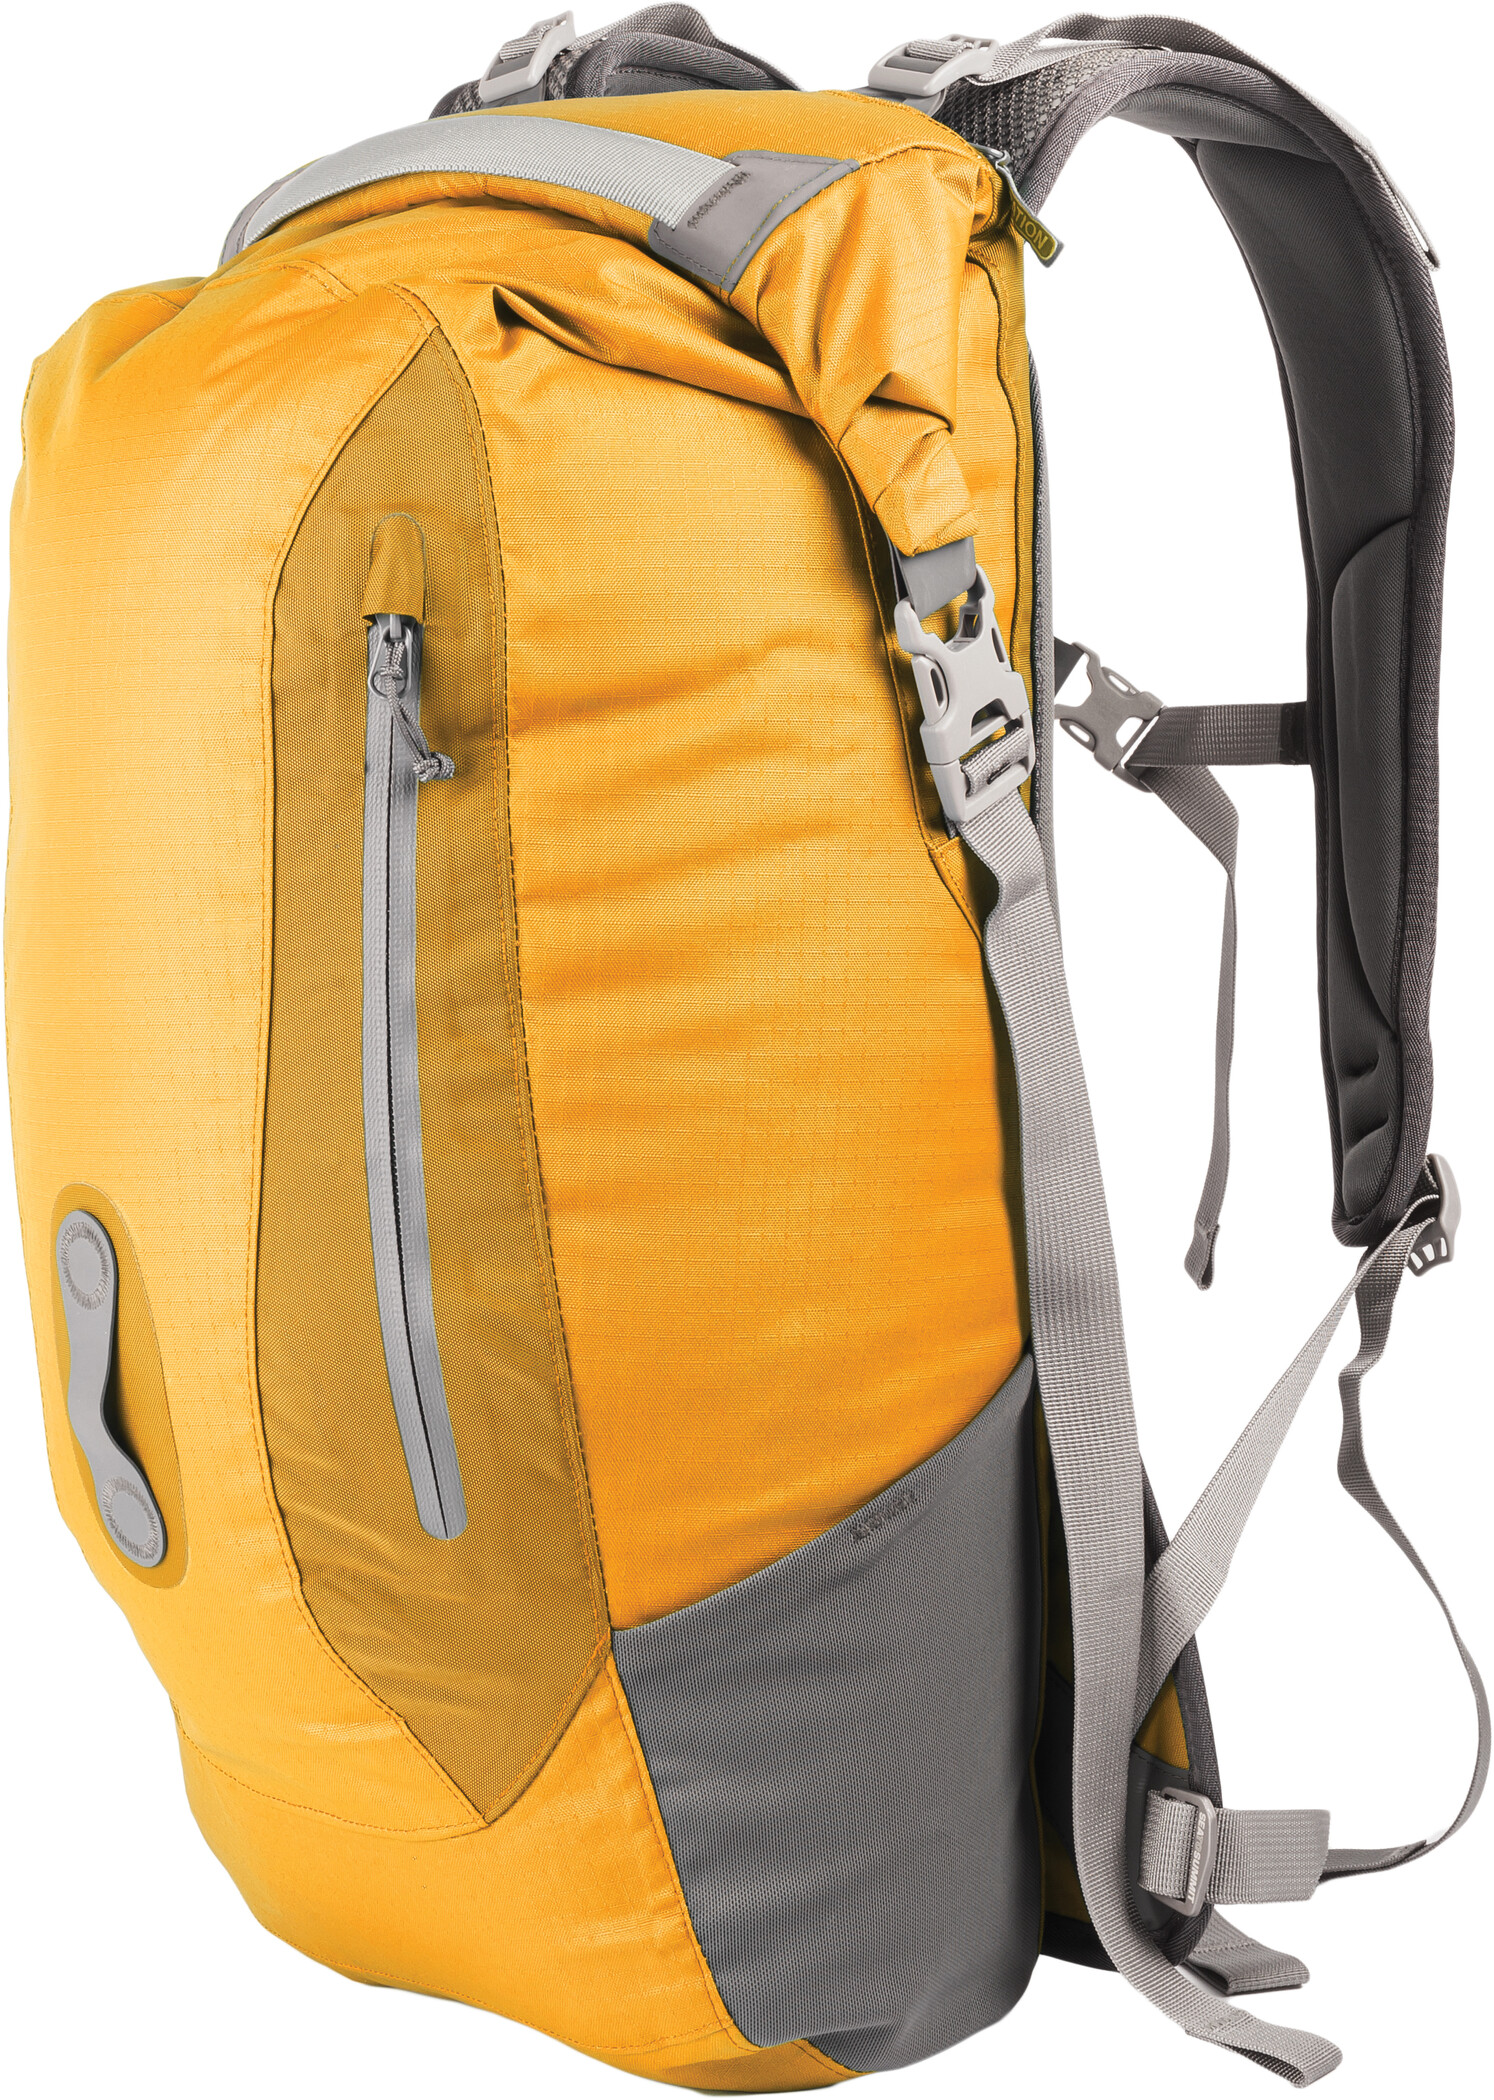 Sea to Summit Rapid Rygsæk 26L, yellow (2019) | Travel bags